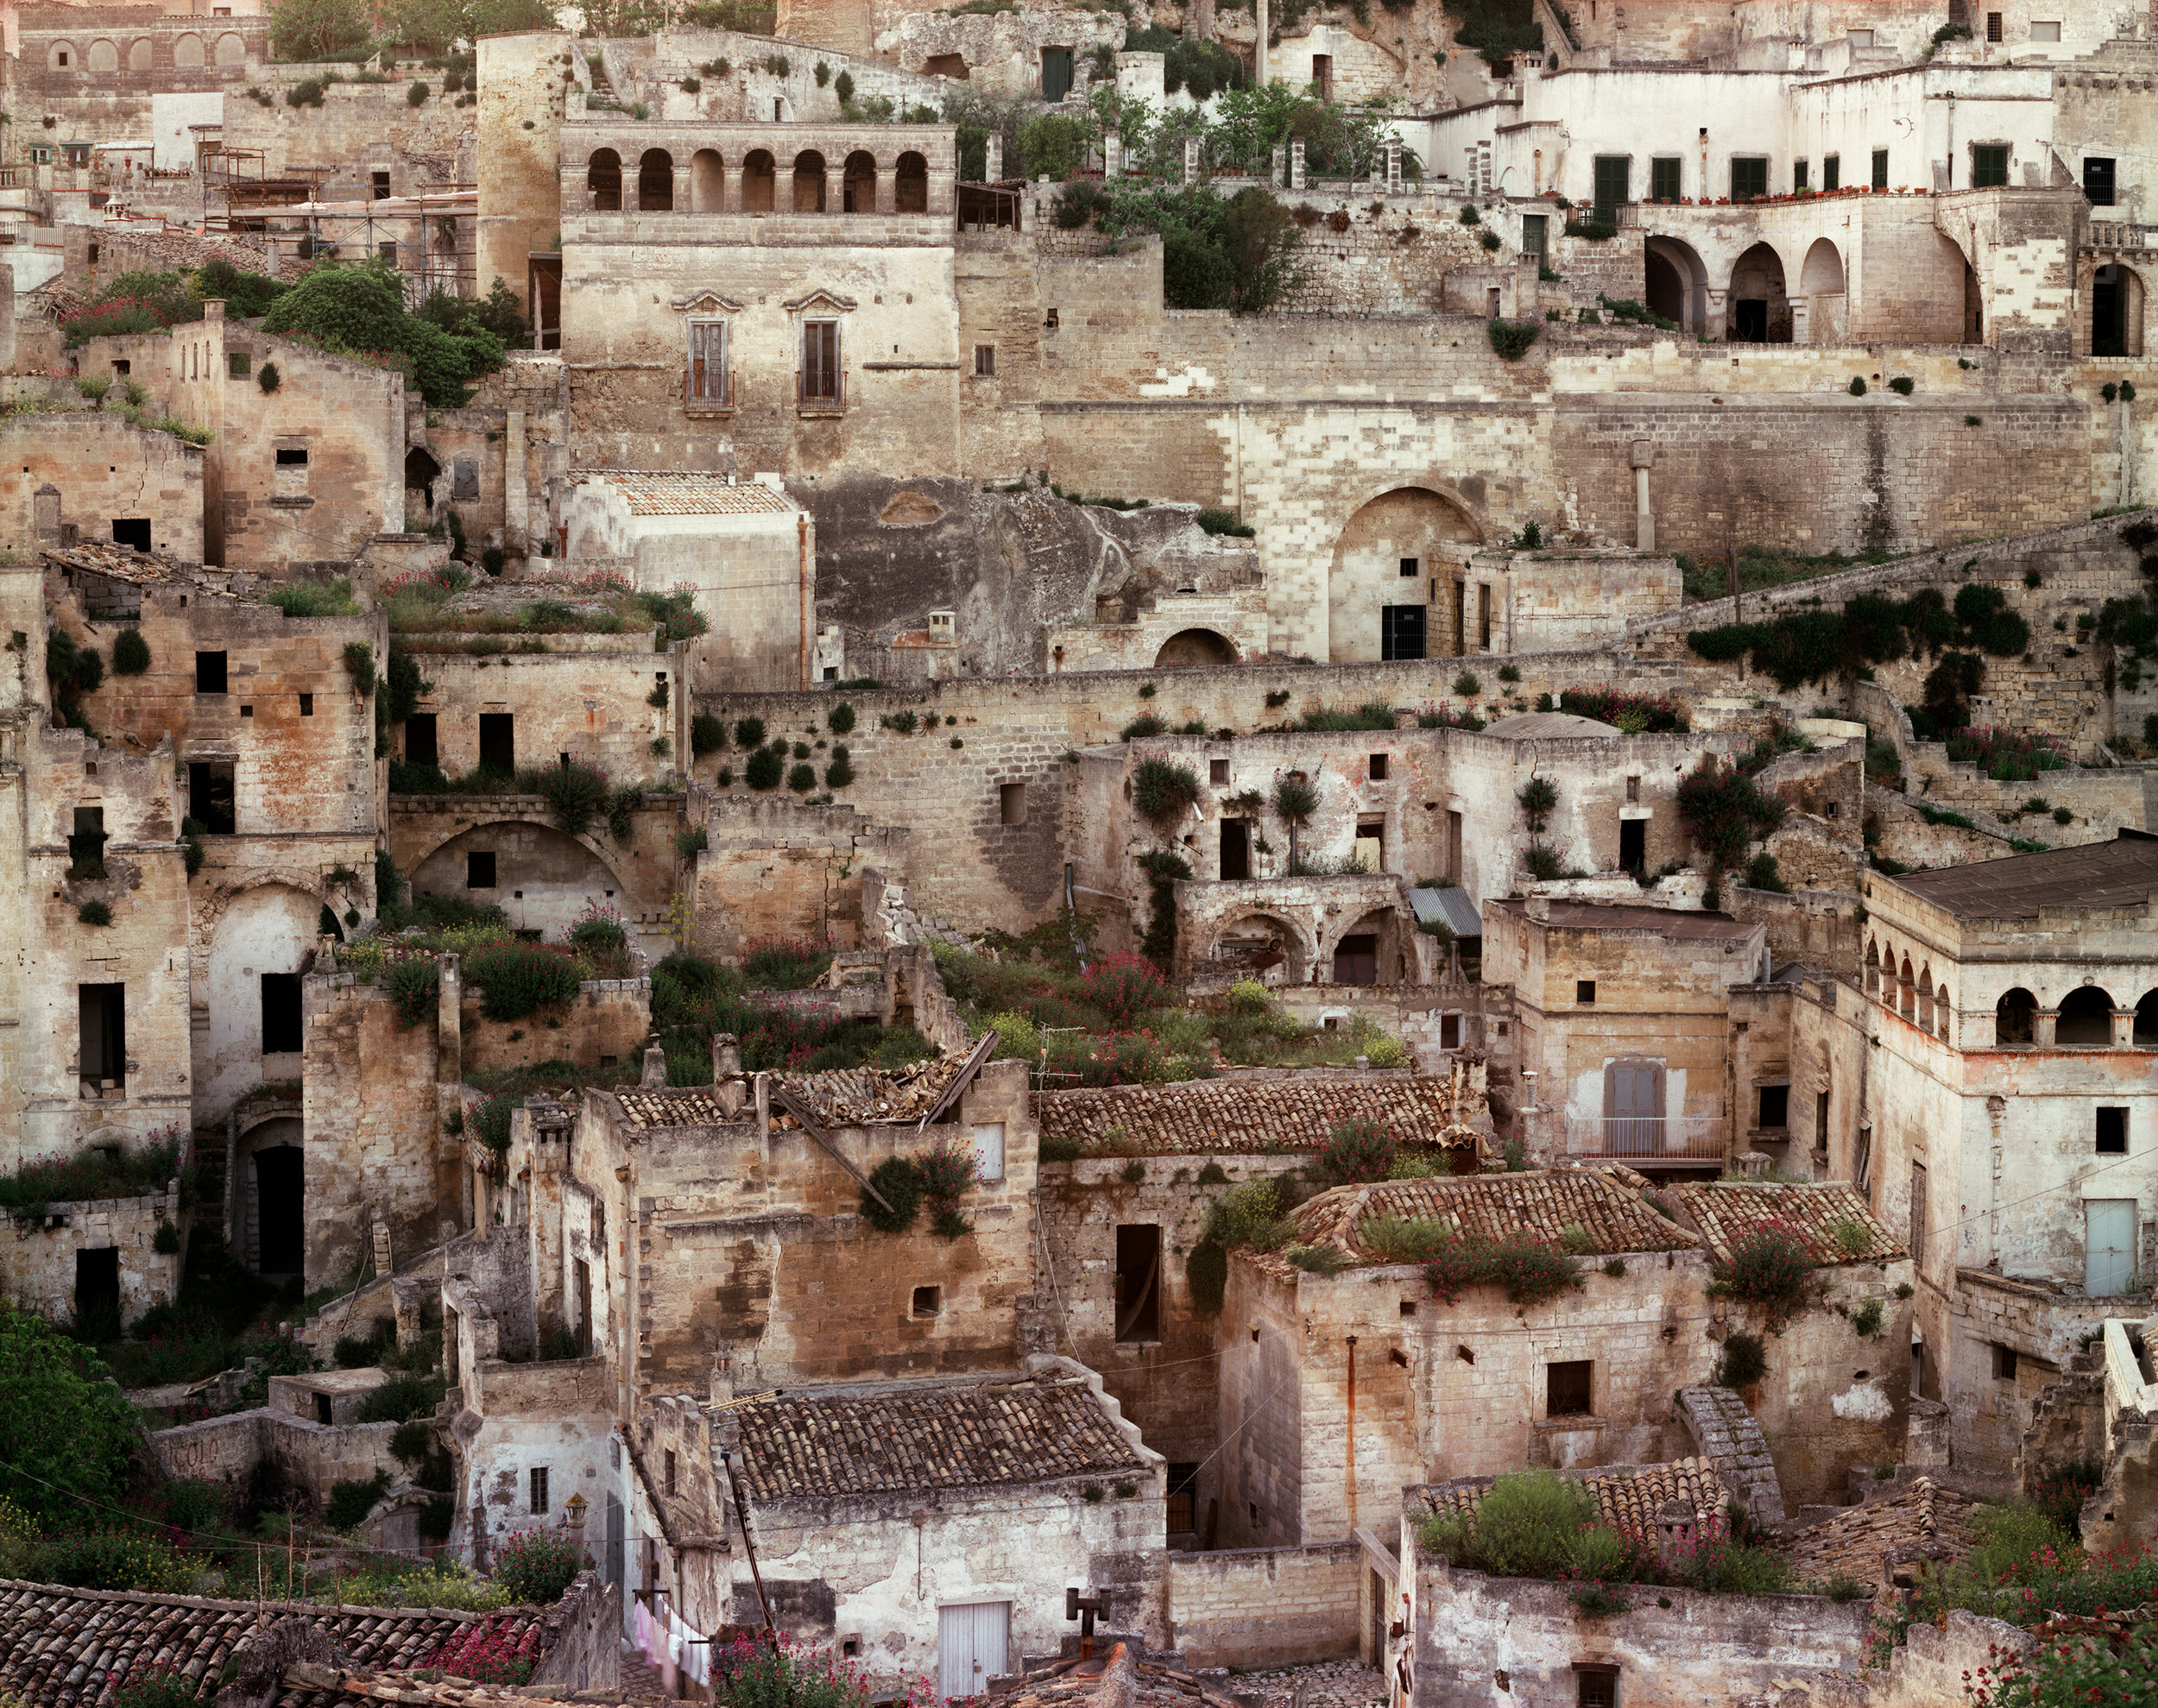 Caves used as dwellings since prehistoric times, modifies with tufa facades, now under restoration, Matera, Italy, 1994